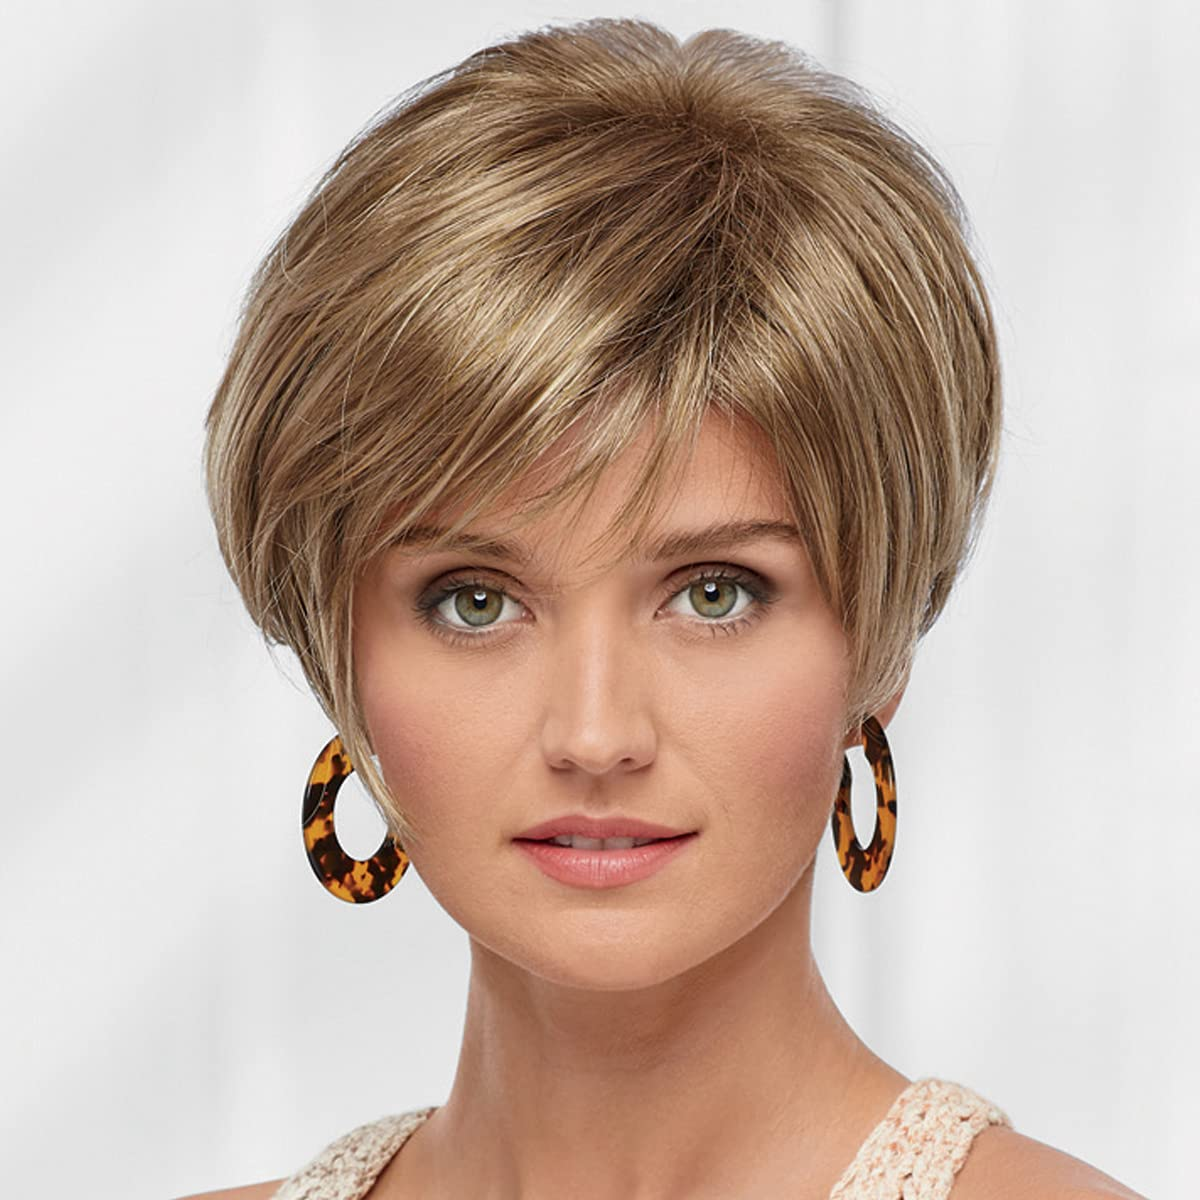 Betsy WhisperLite Wig by Paula A surprise price is realized Young NEW Pixie Asymm Chic - with